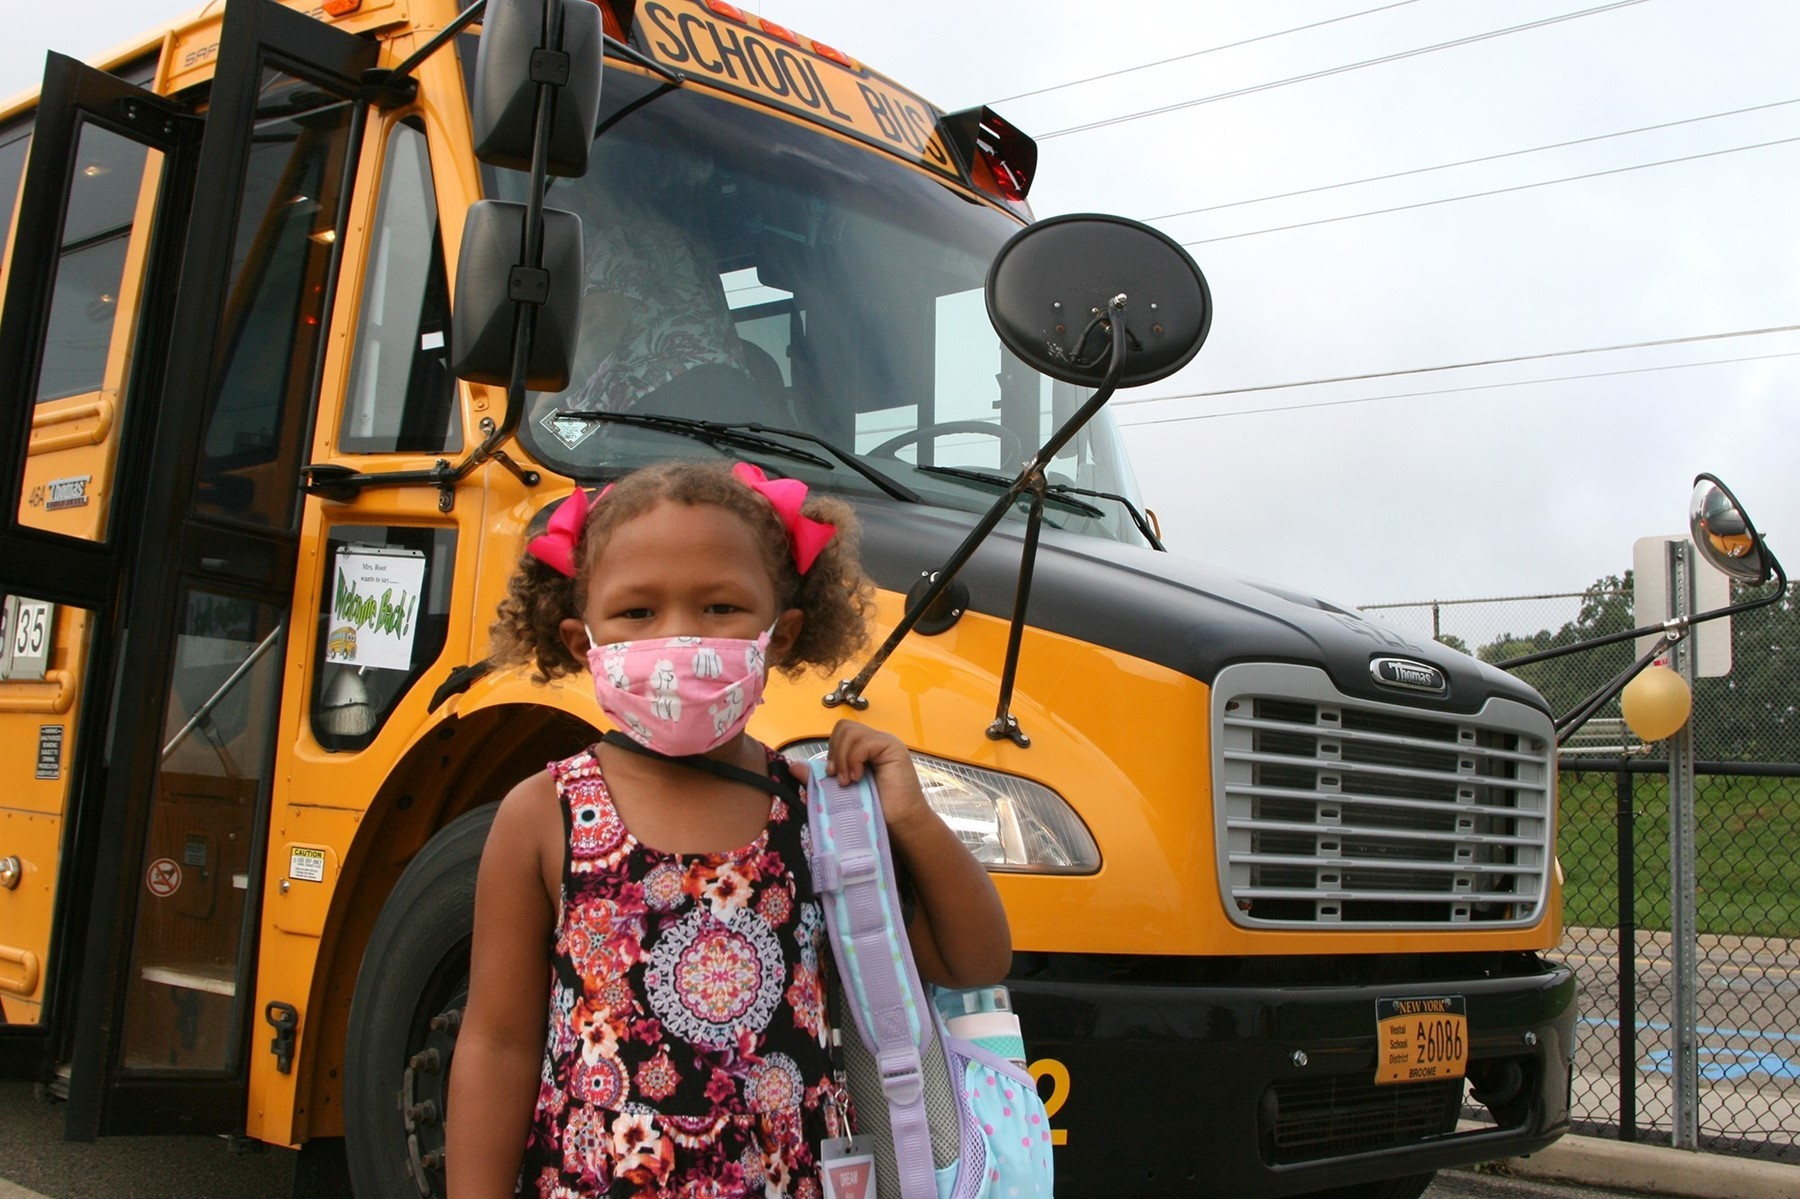 A Clayton Avenue Kindergarten student with pink bows on her pig tails stands in front of the school bus on the first day of school.